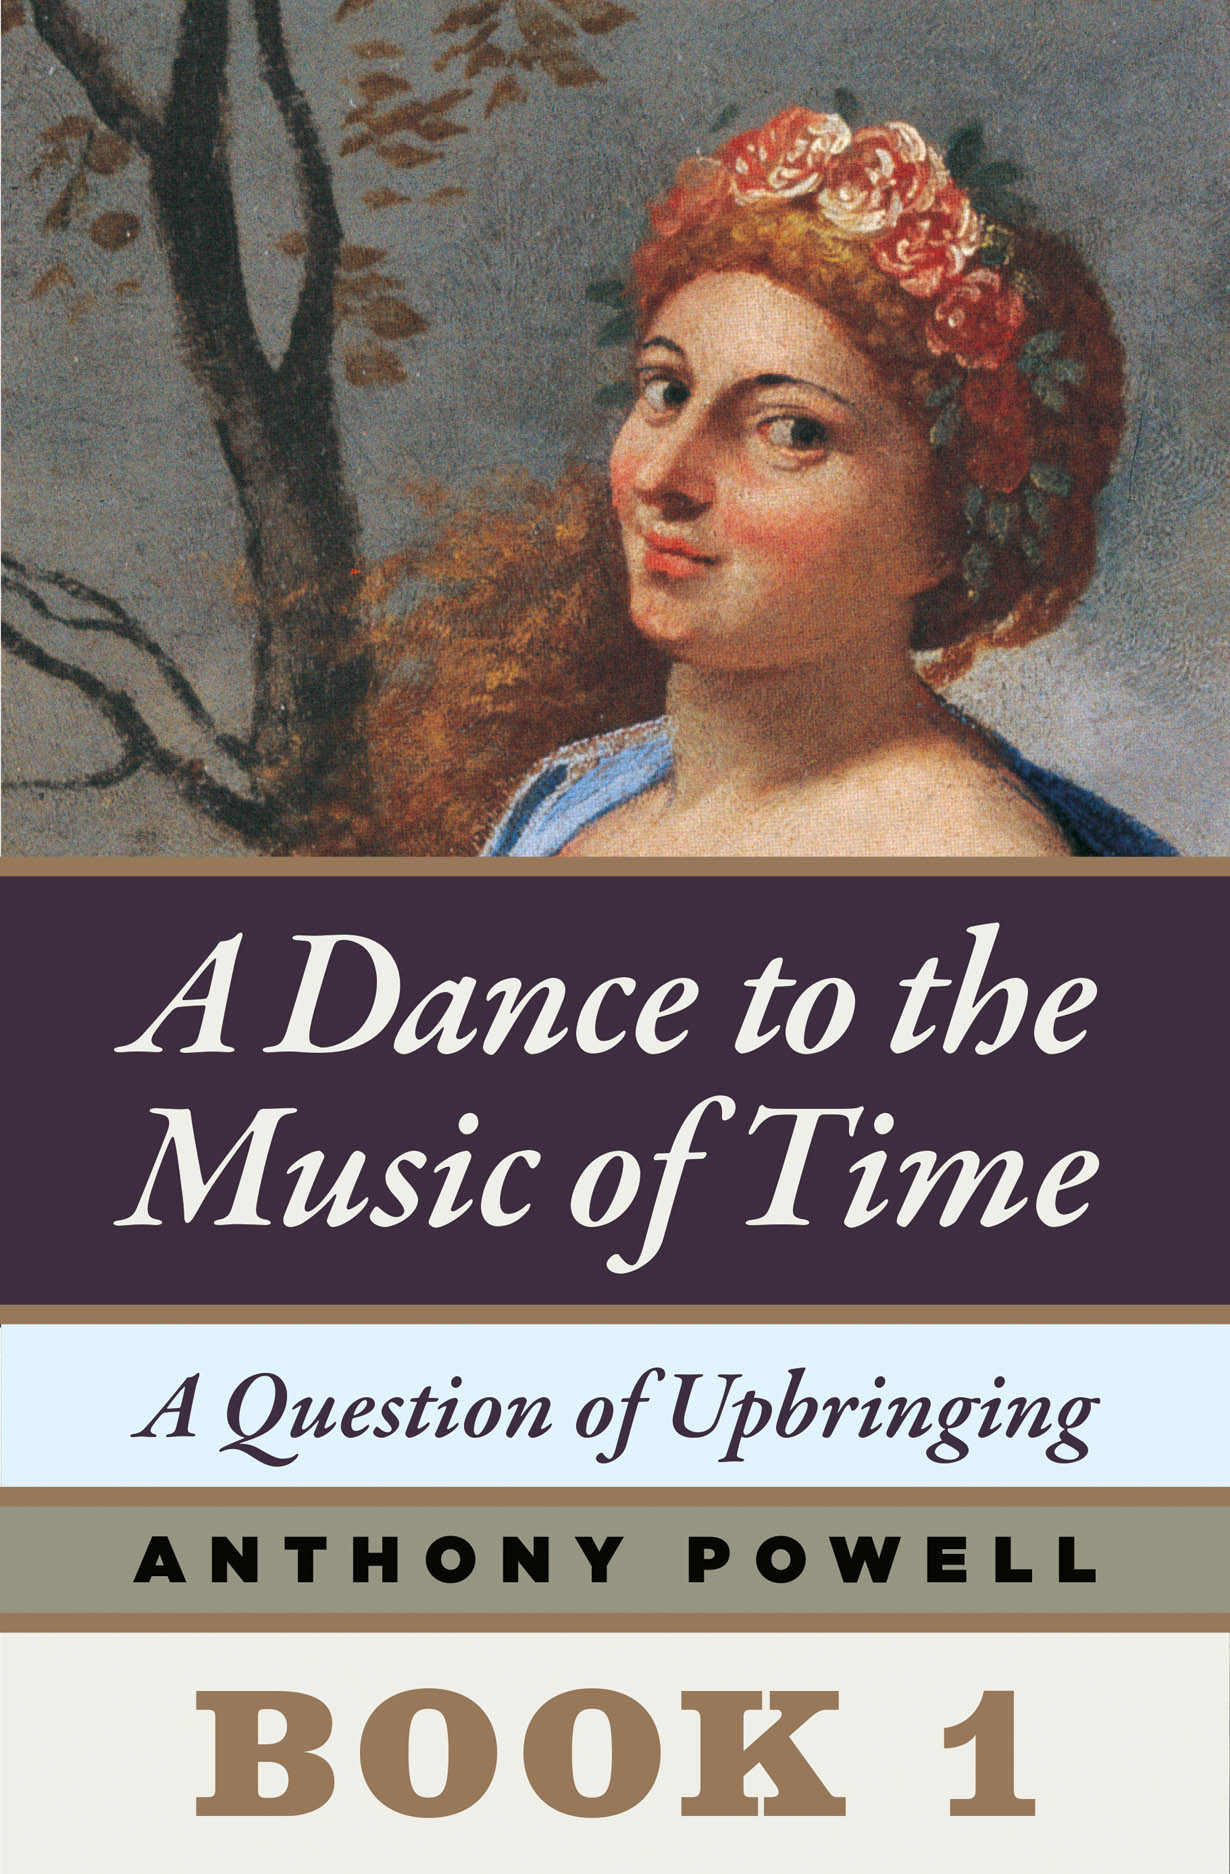 Dance Dance (to the Music of Time) Revolution: Free Anthony Powell!